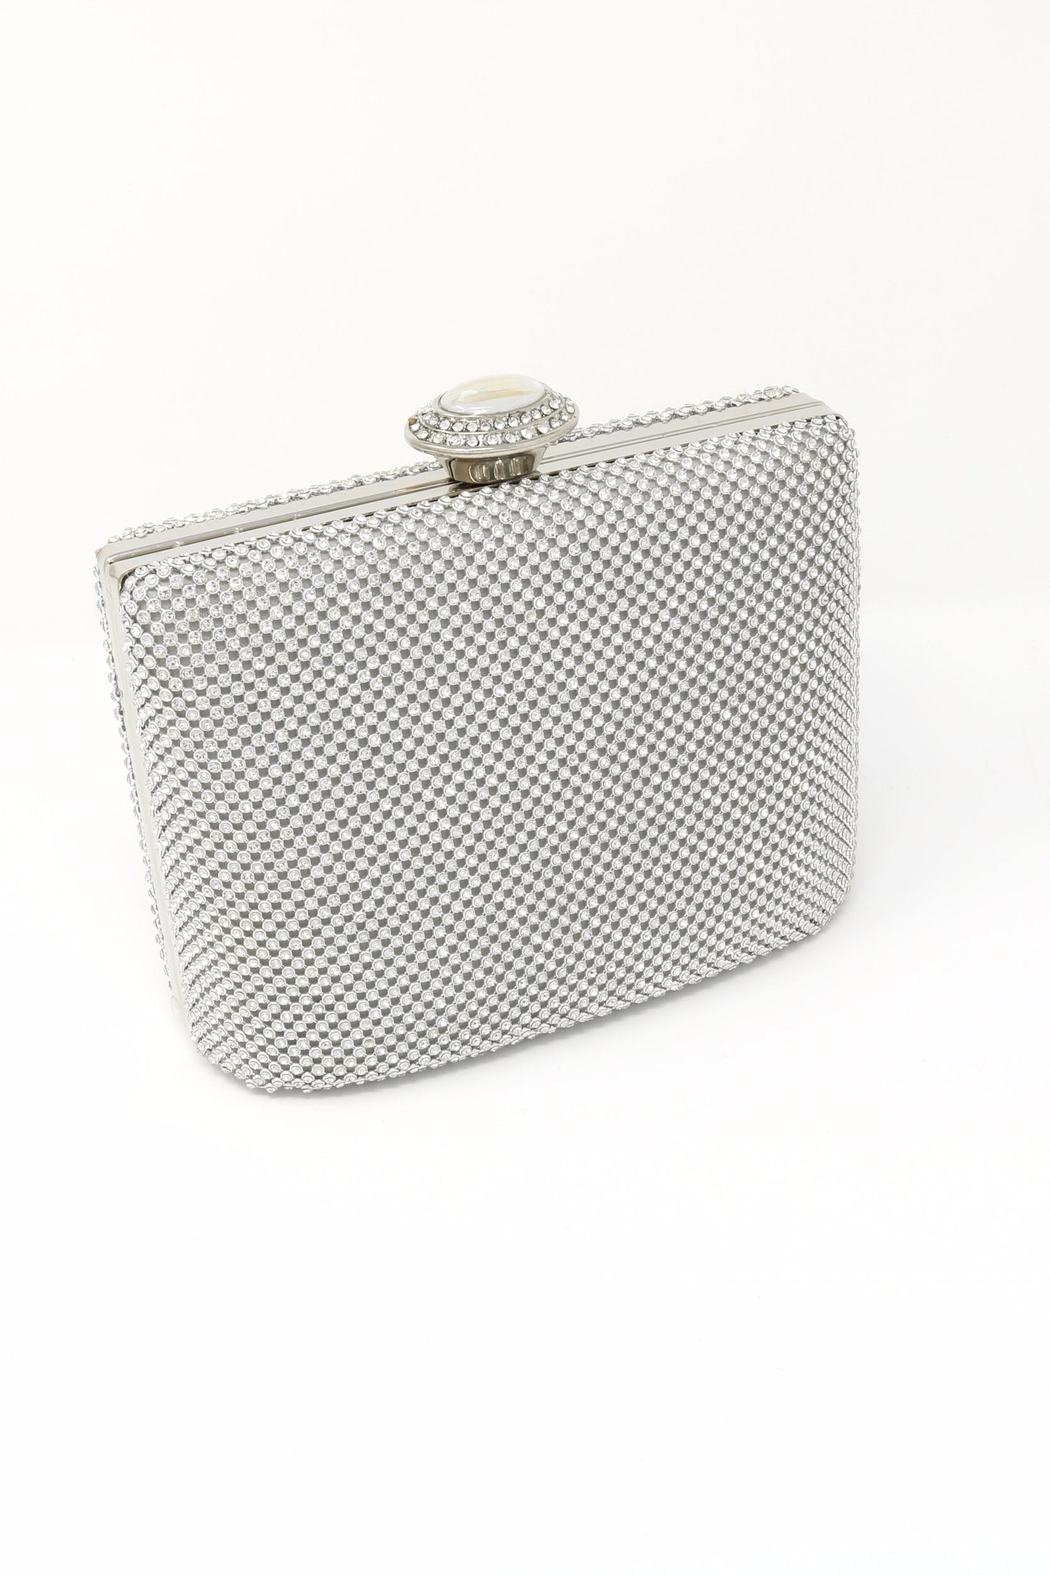 Nadya's Closet Stone Accent Evening Clutch - Front Cropped Image